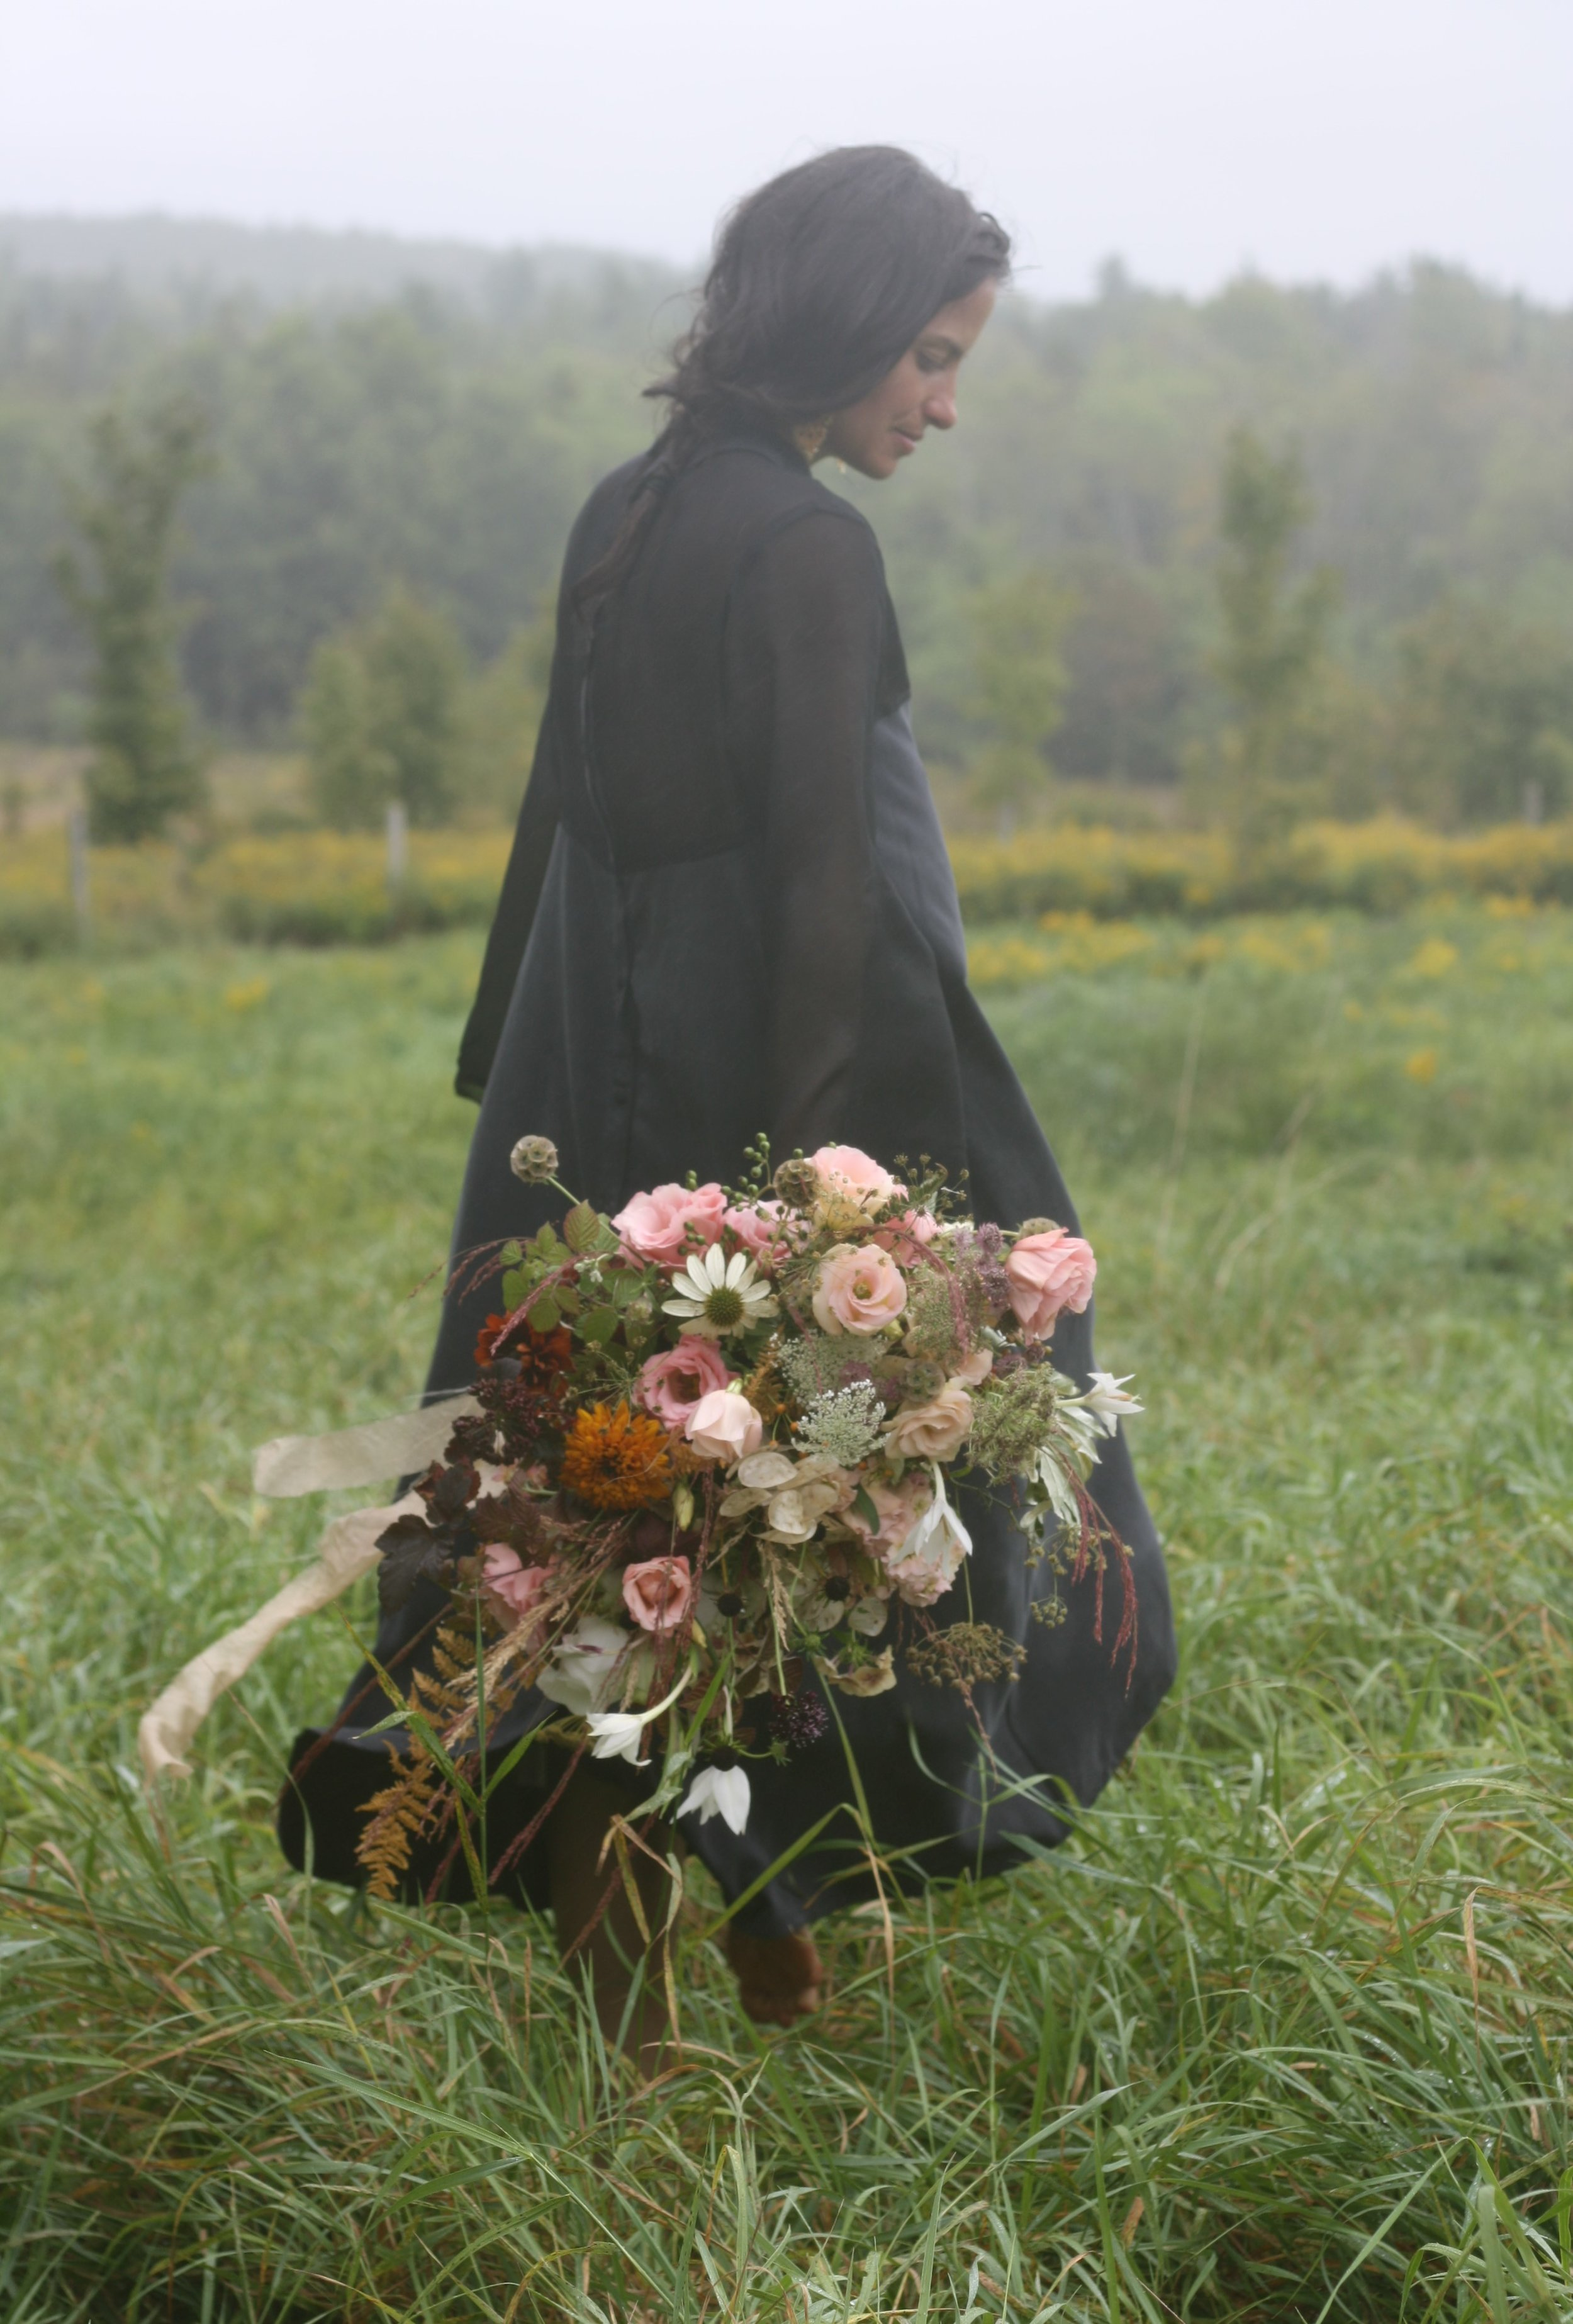 Wuthering Heights wedding inspiration in misty Nova Scotia. September Bridal shoot. Dress by Maggie Jayne.